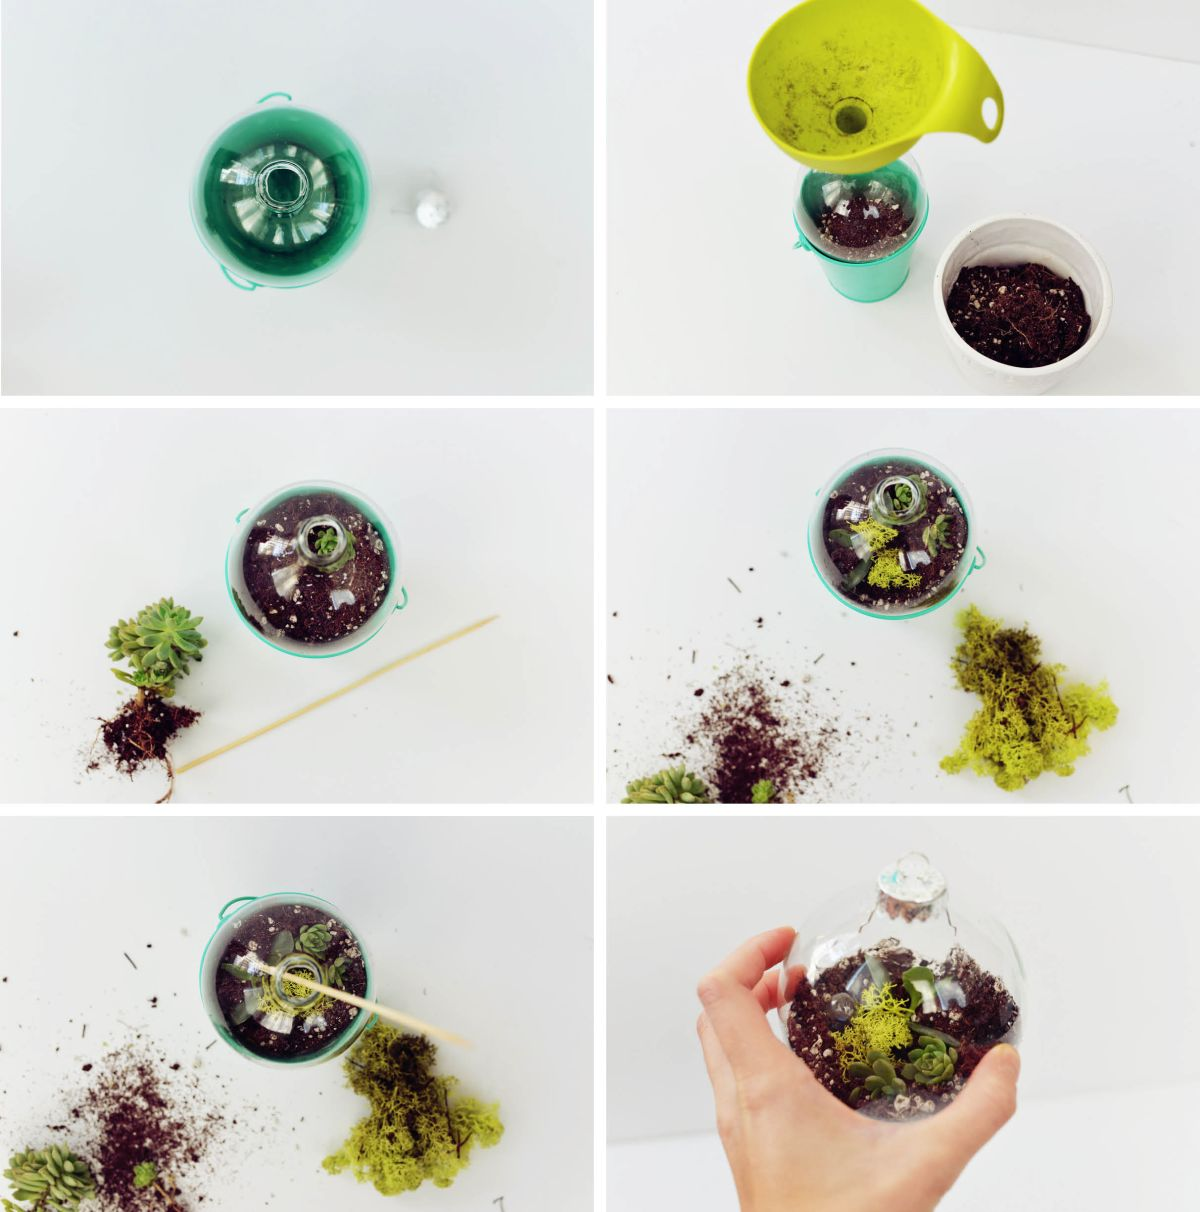 DIY Terrarium Ornaments Instructions